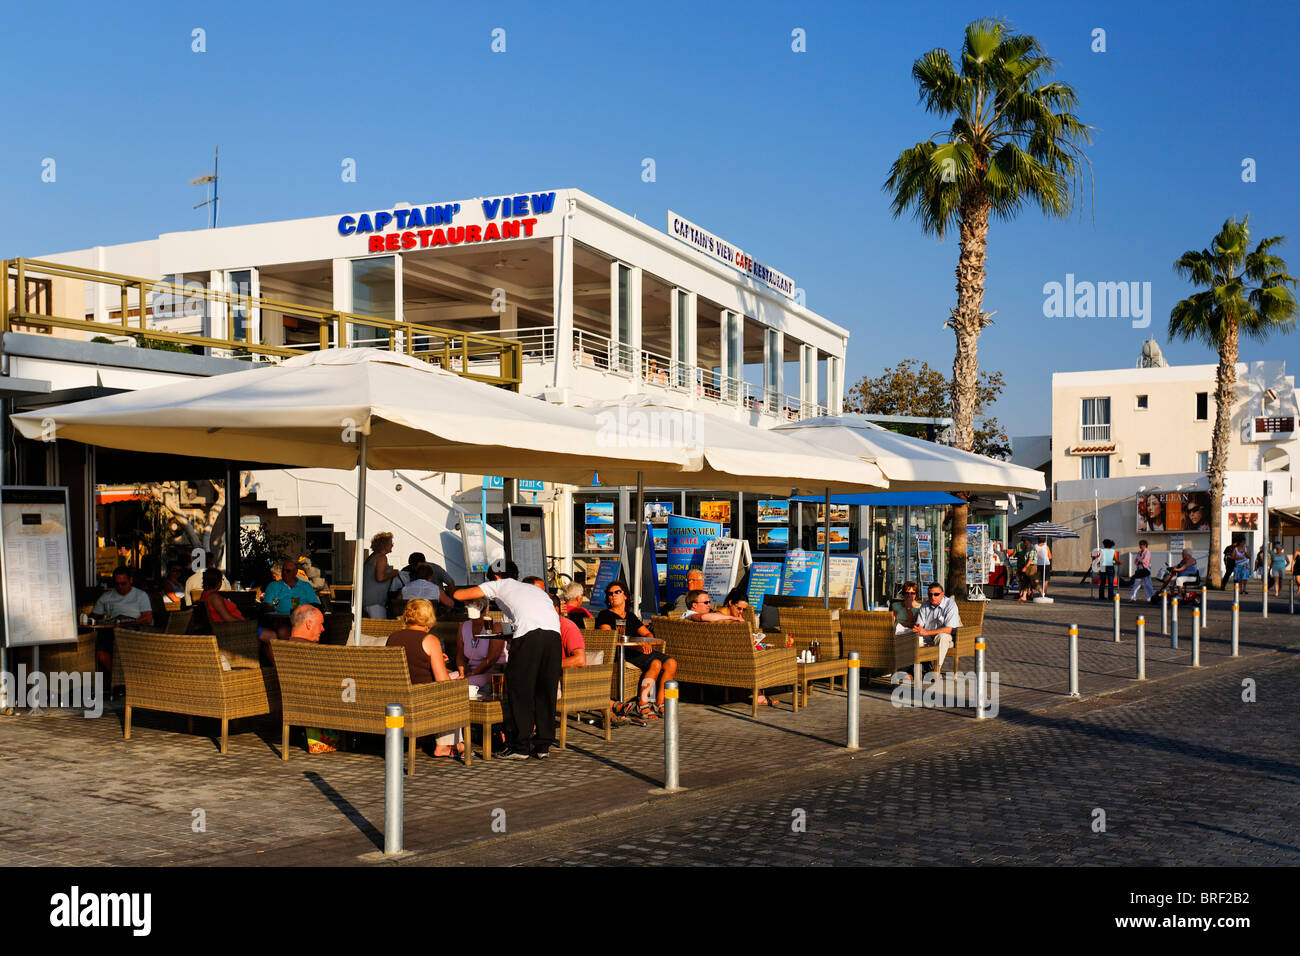 Shore promenade with people, shops, restaurants and palm trees, Kato, Paphos, Pafos, Cyprus, Europe Stock Photo